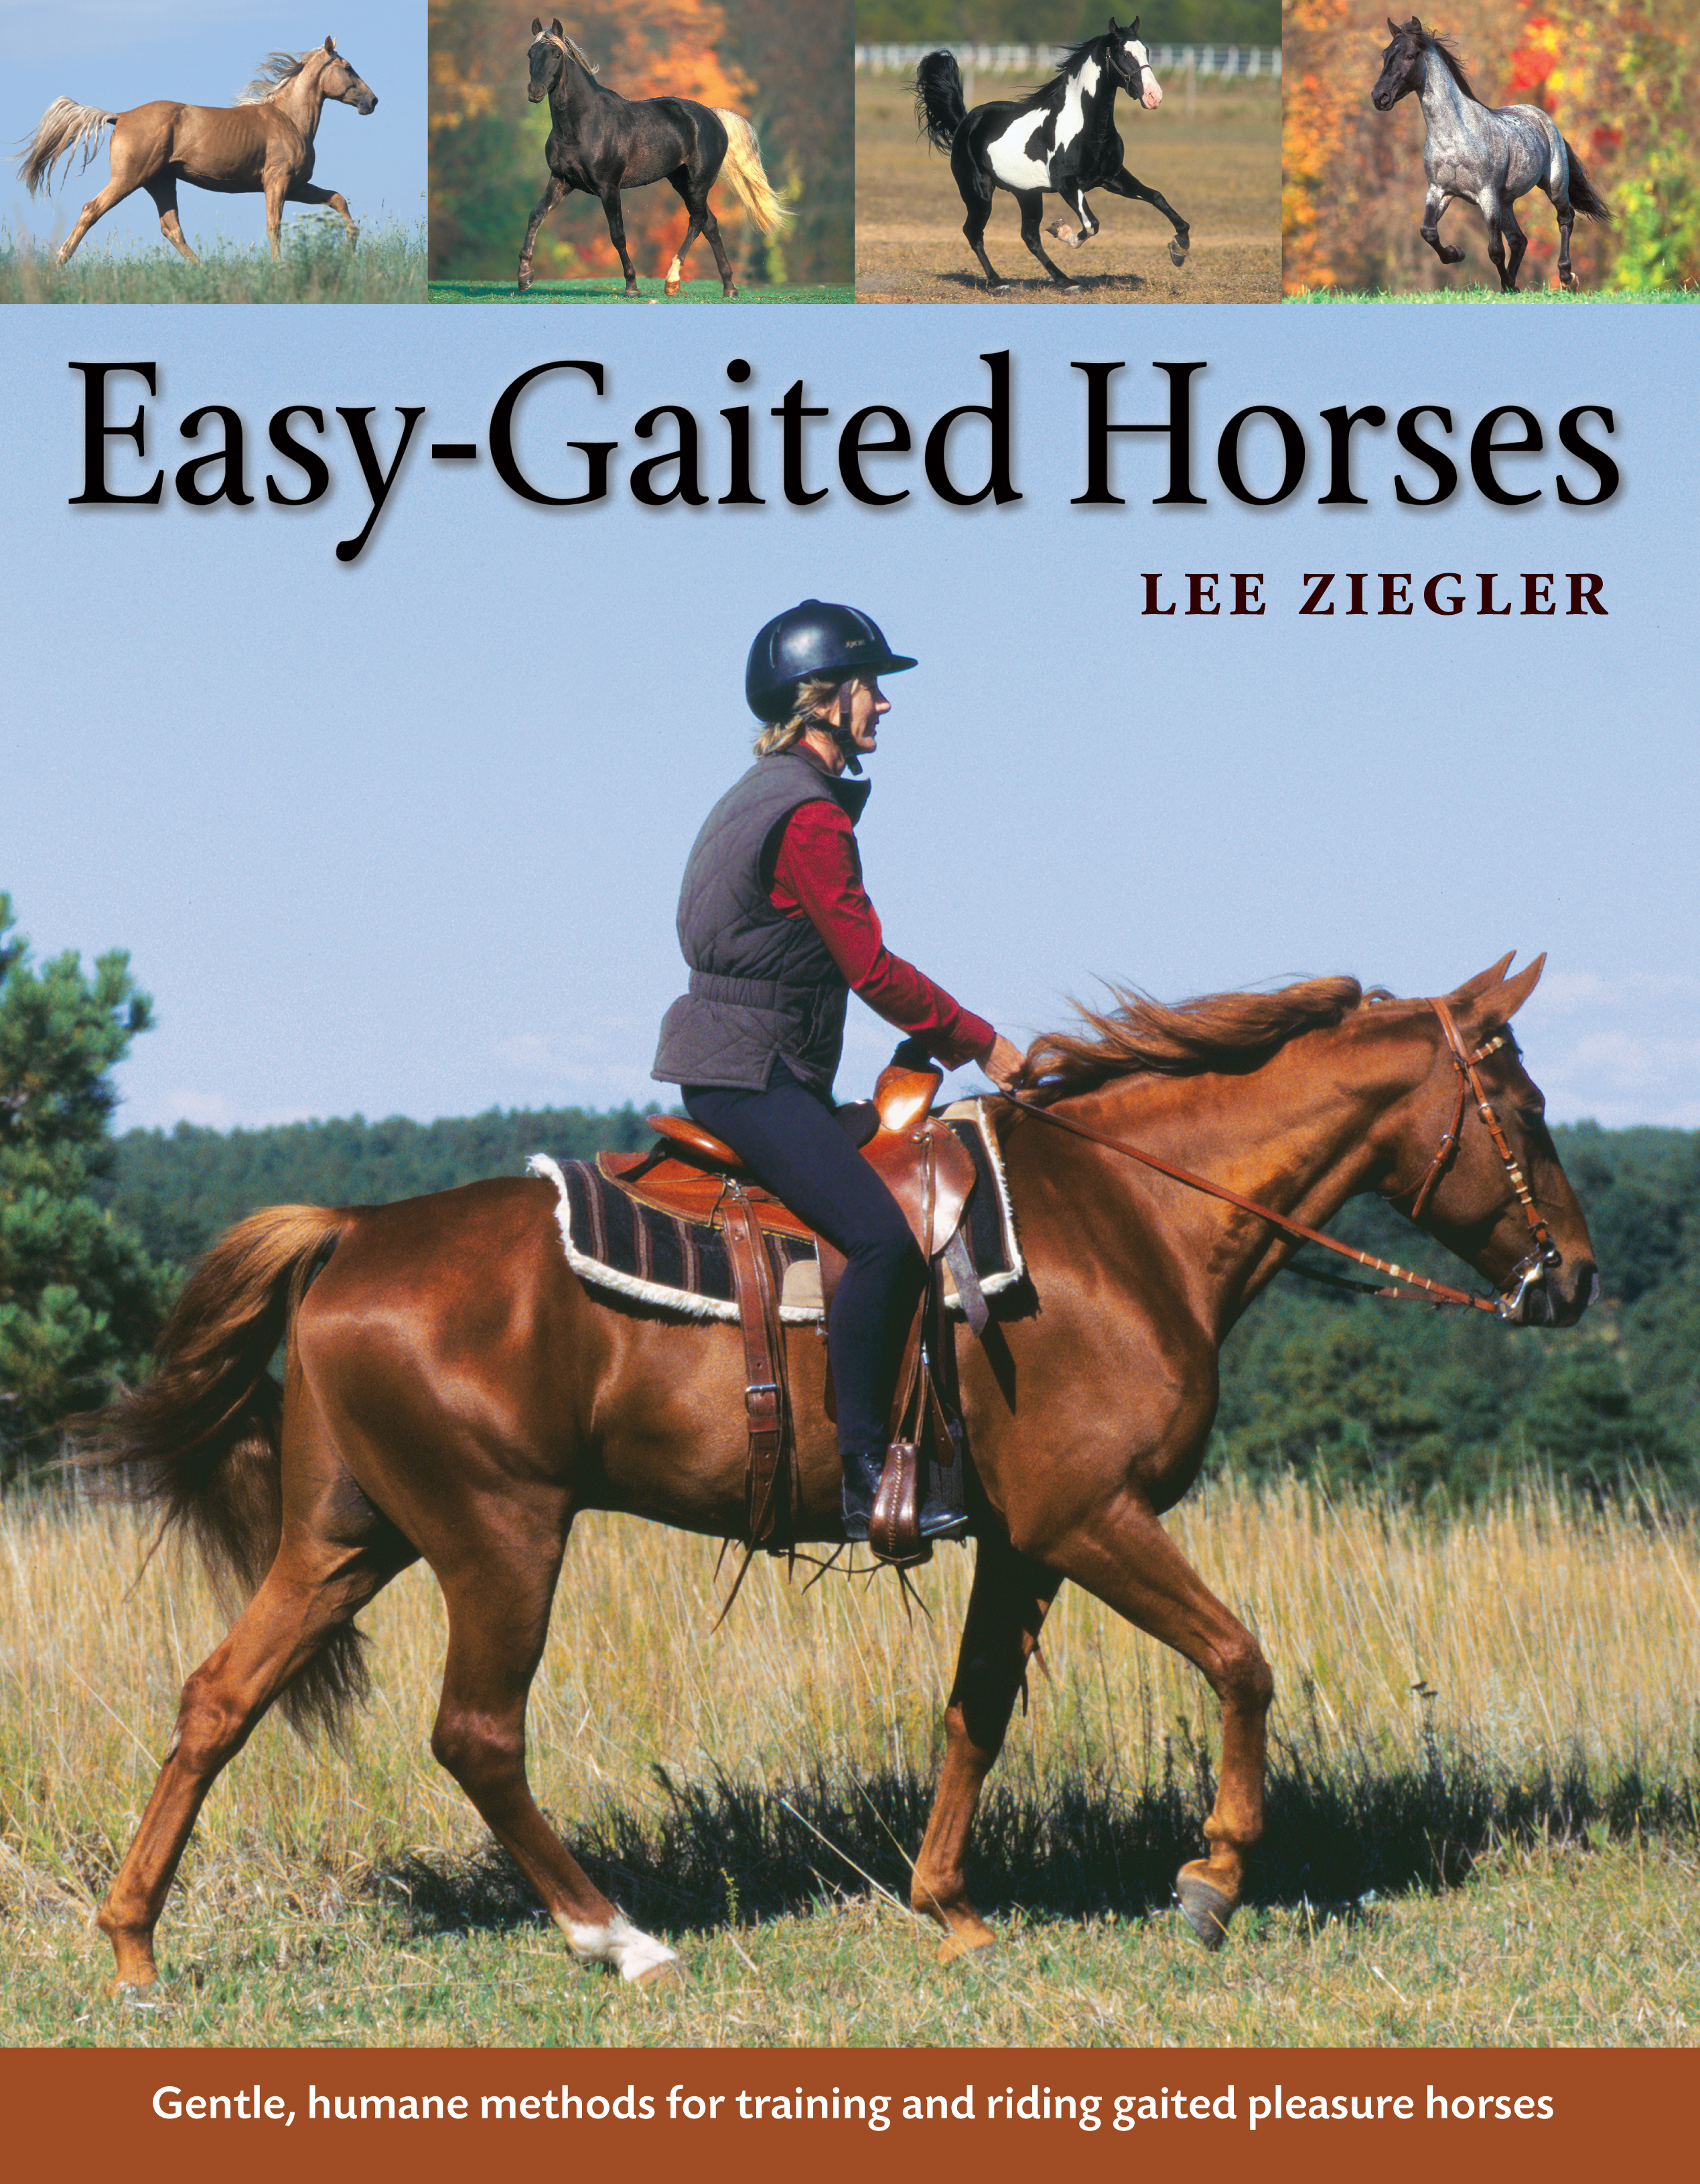 Easy-Gaited Horses Gentle, humane methods for training and riding gaited pleasure horses - Lee Ziegler